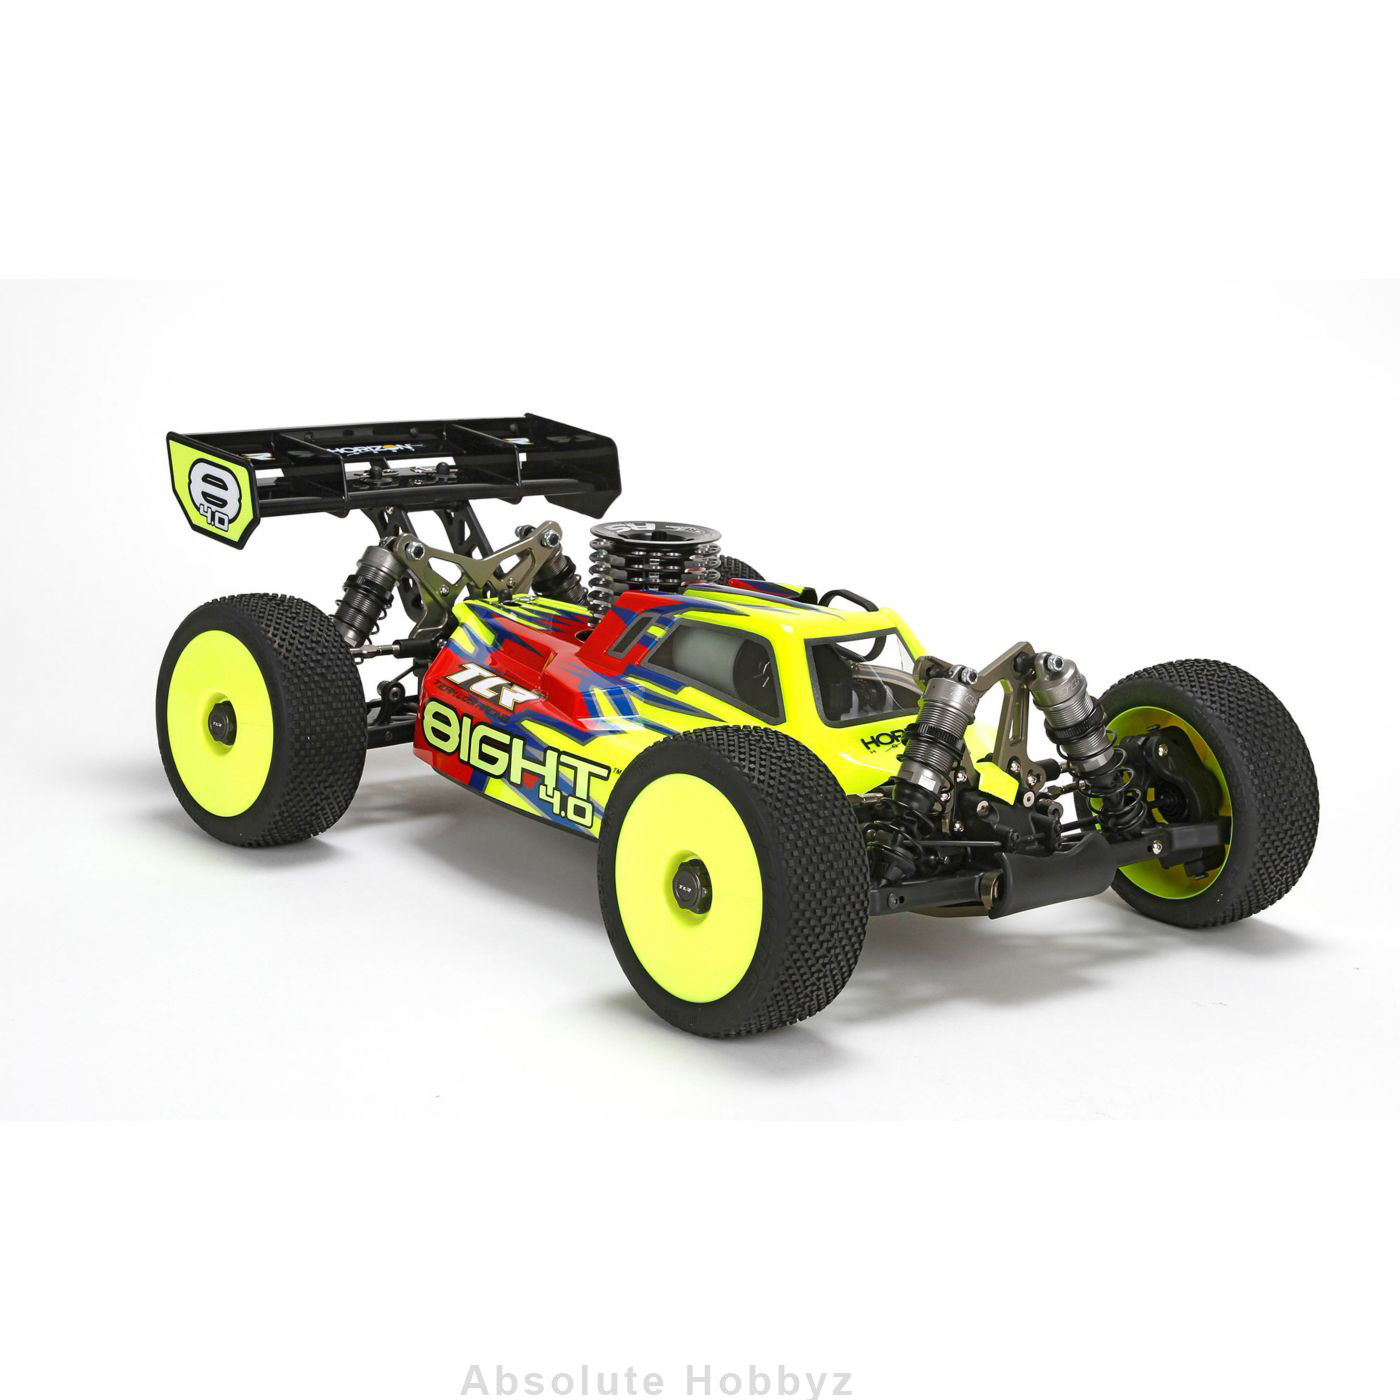 electric rc buggy kit with Team Losi Racing 18 8ight 40 4wd Nitro Buggy Race Kit P 508040 on Schumacher Cat Xls 110th 4wd Buggy Re Release moreover 262888095168 further Nitro Rc Car Monster Truck besides Kyosho Nexxt Readyset Ez Series Electric 2wd Buggy Review furthermore 1 18 Mini Desert Truck Rtr Red Losb0202t1.